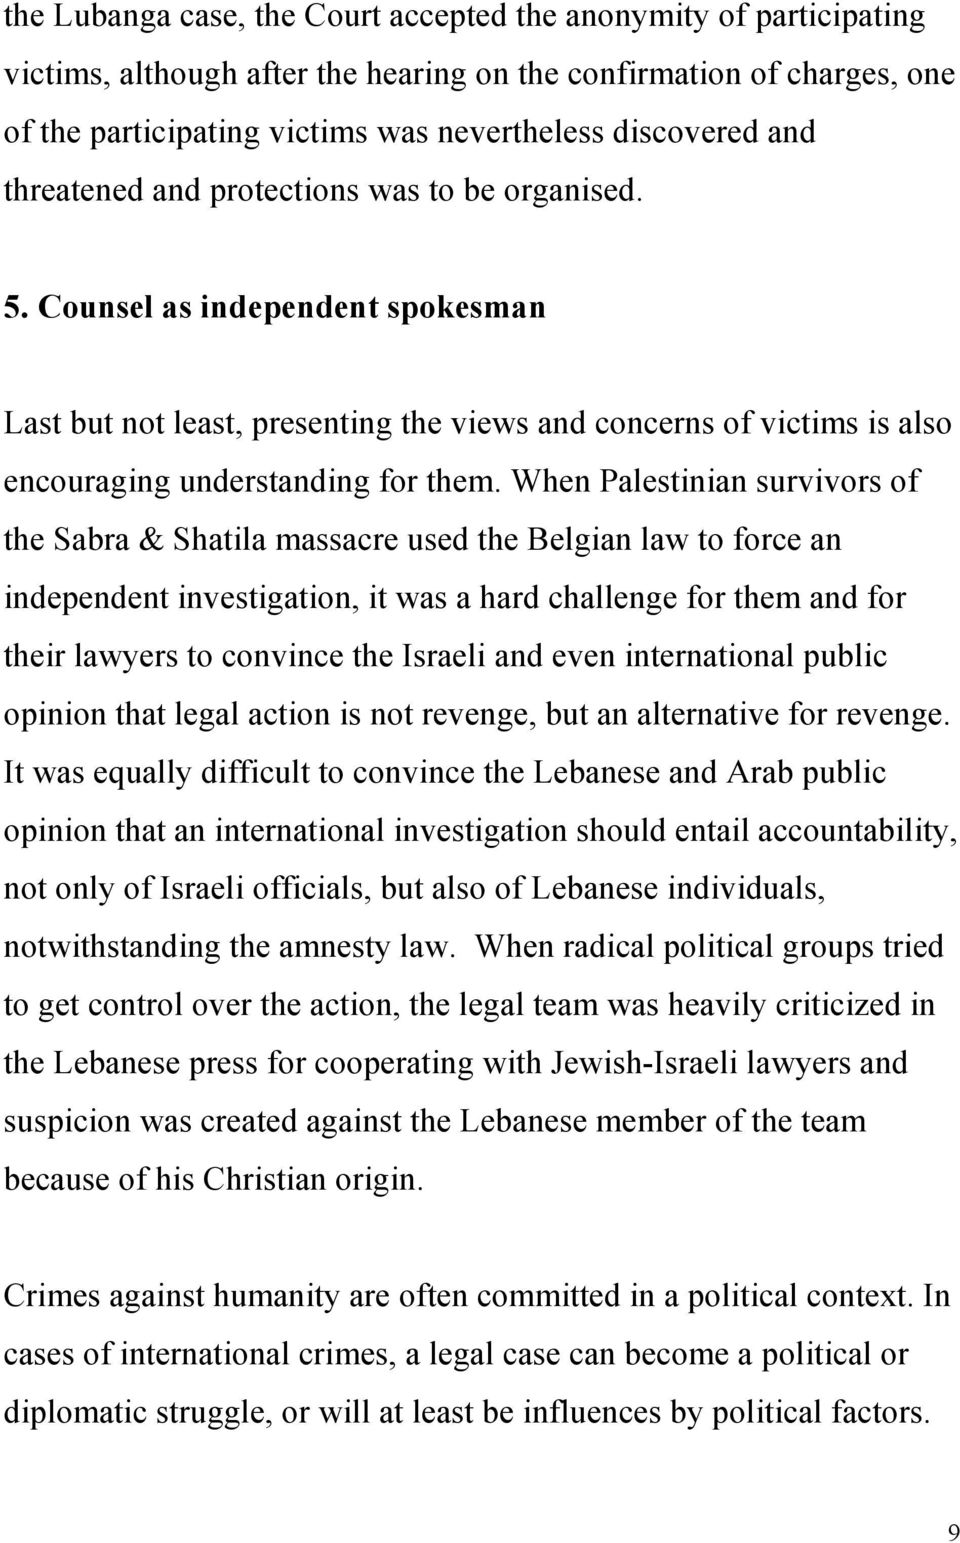 When Palestinian survivors of the Sabra & Shatila massacre used the Belgian law to force an independent investigation, it was a hard challenge for them and for their lawyers to convince the Israeli